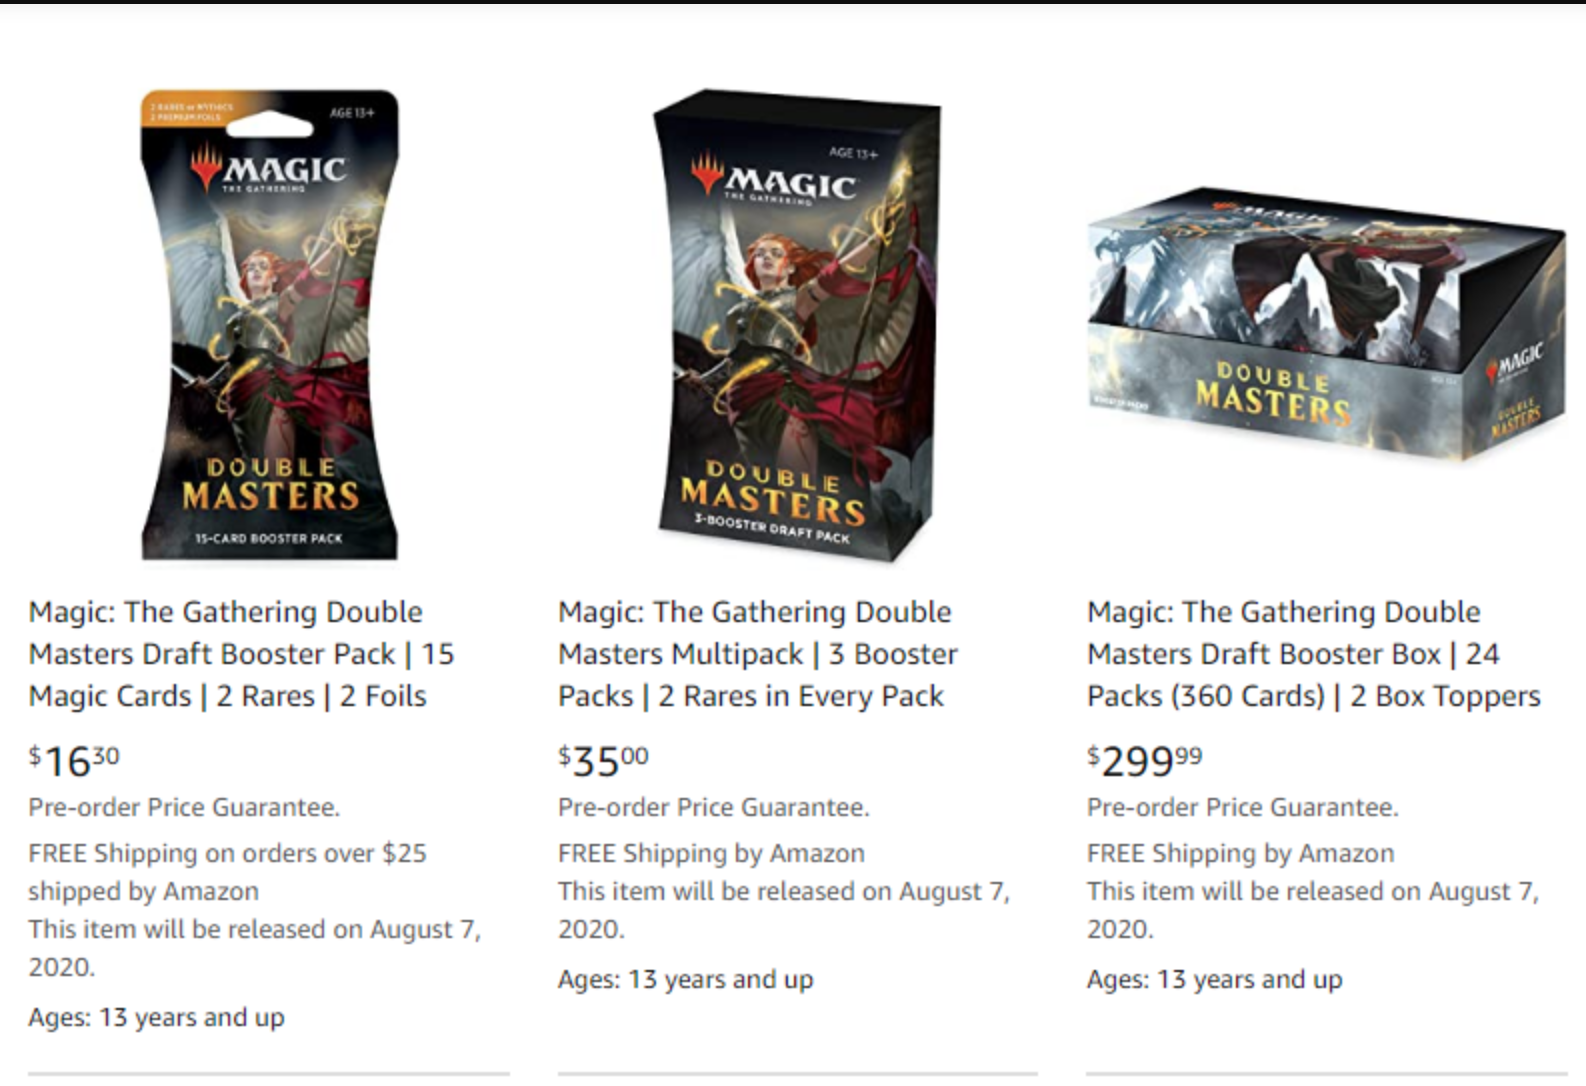 The Gathering Double Masters Draft Booster 24 Packs Magic /& 2 Box Toppers